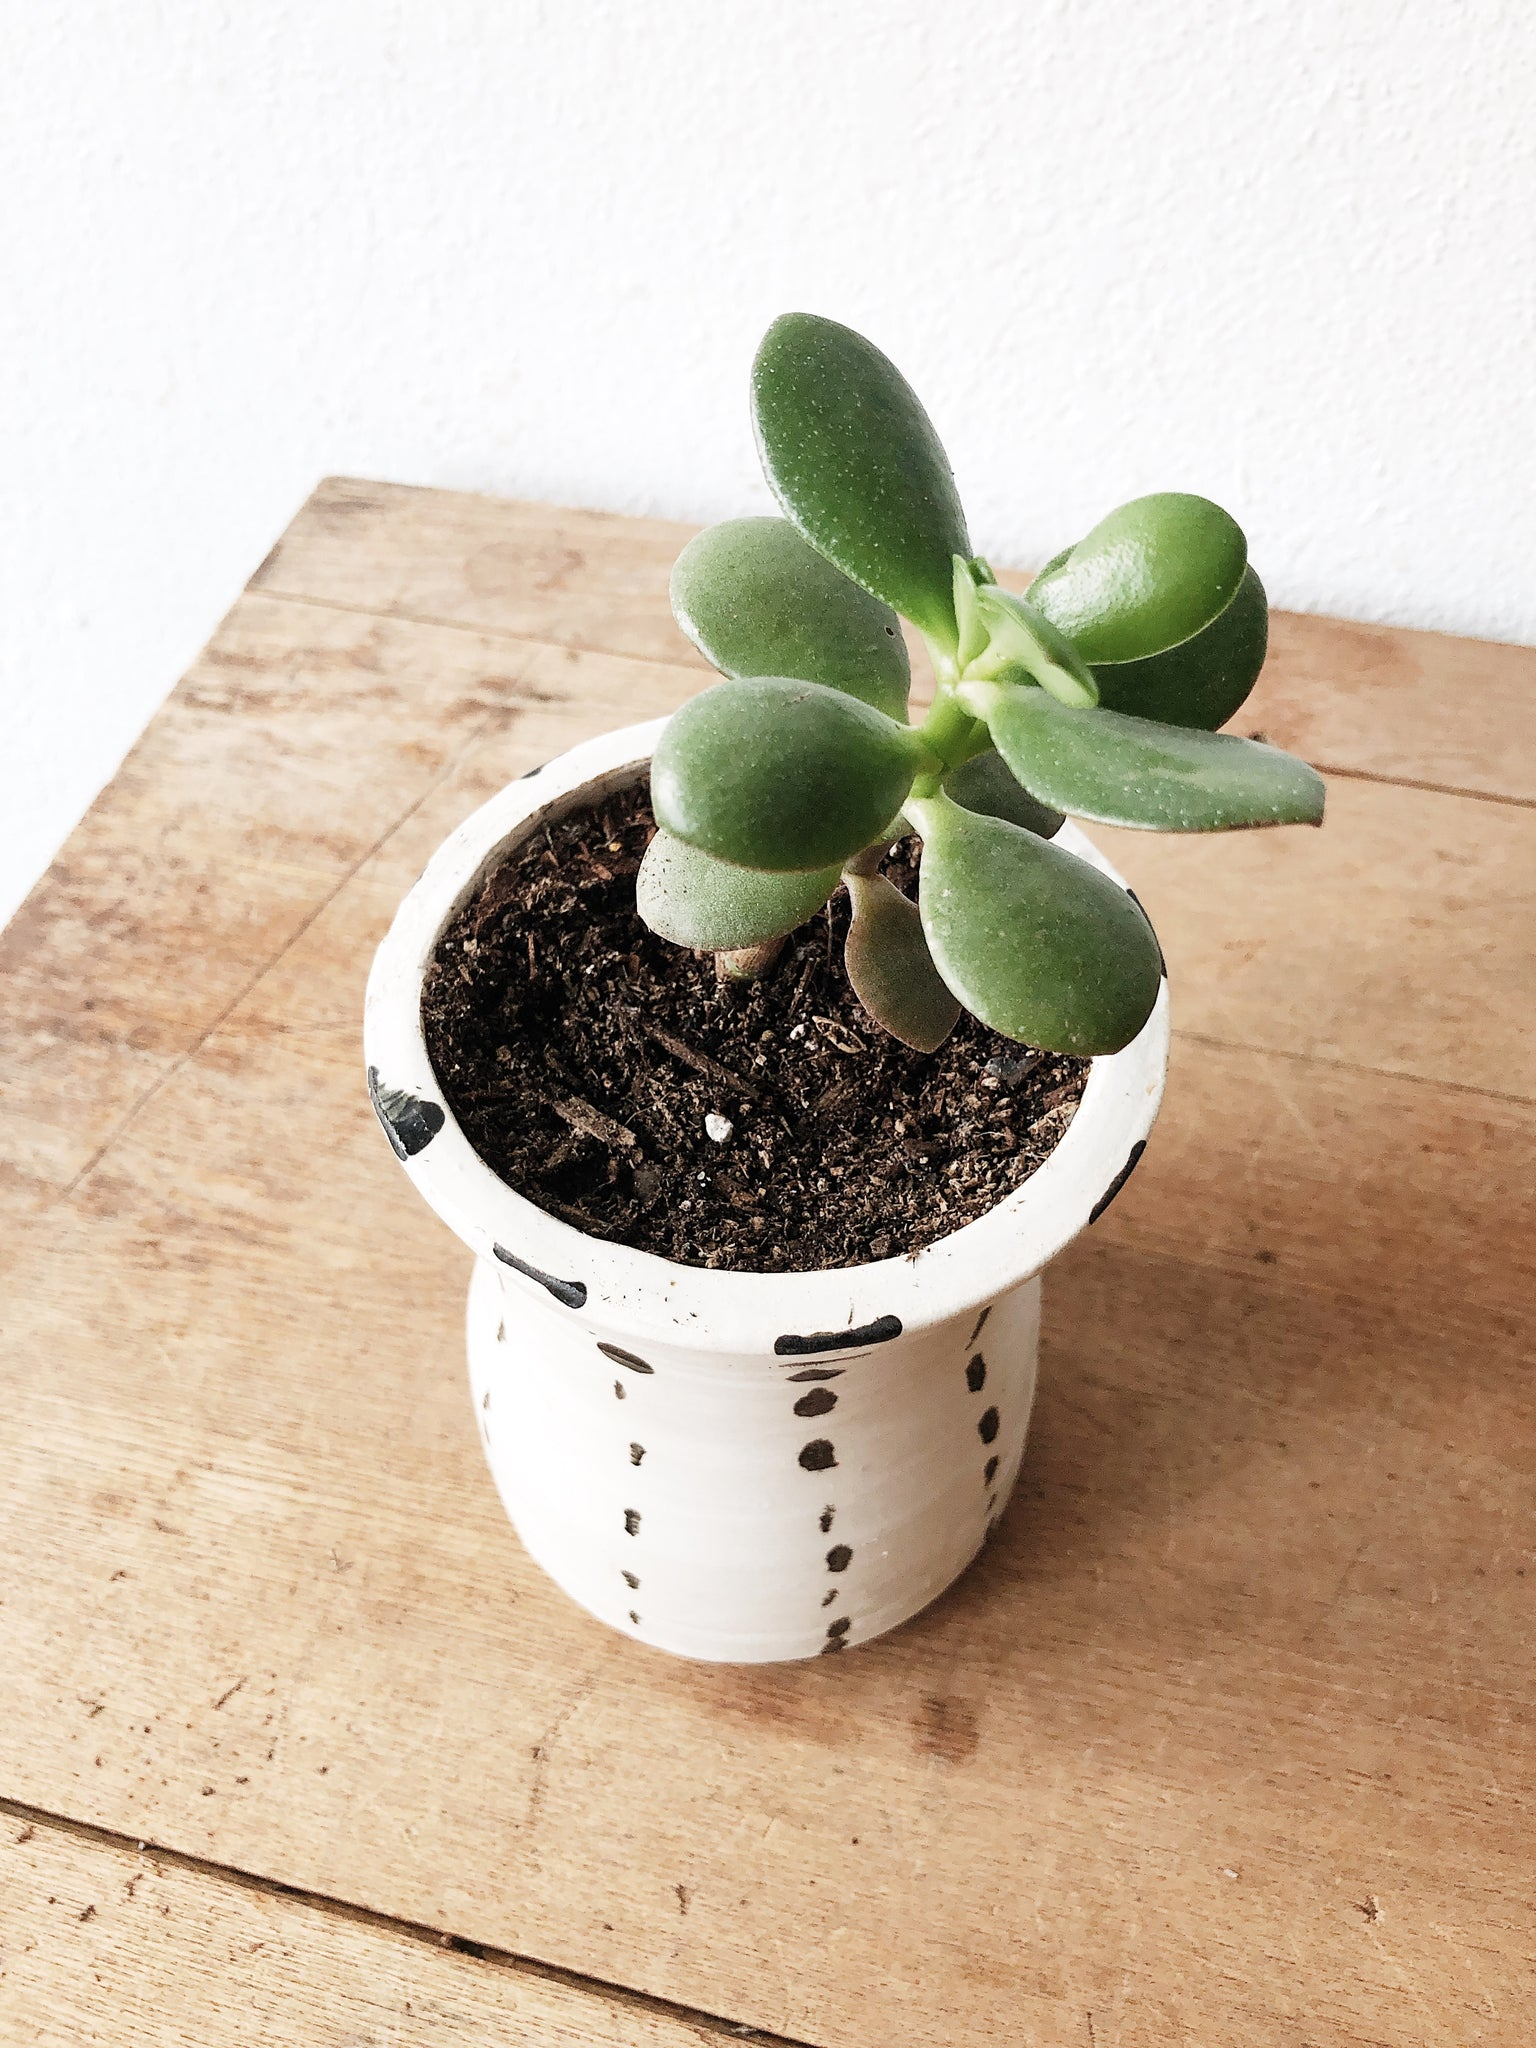 Crassula in Handmade Pottery